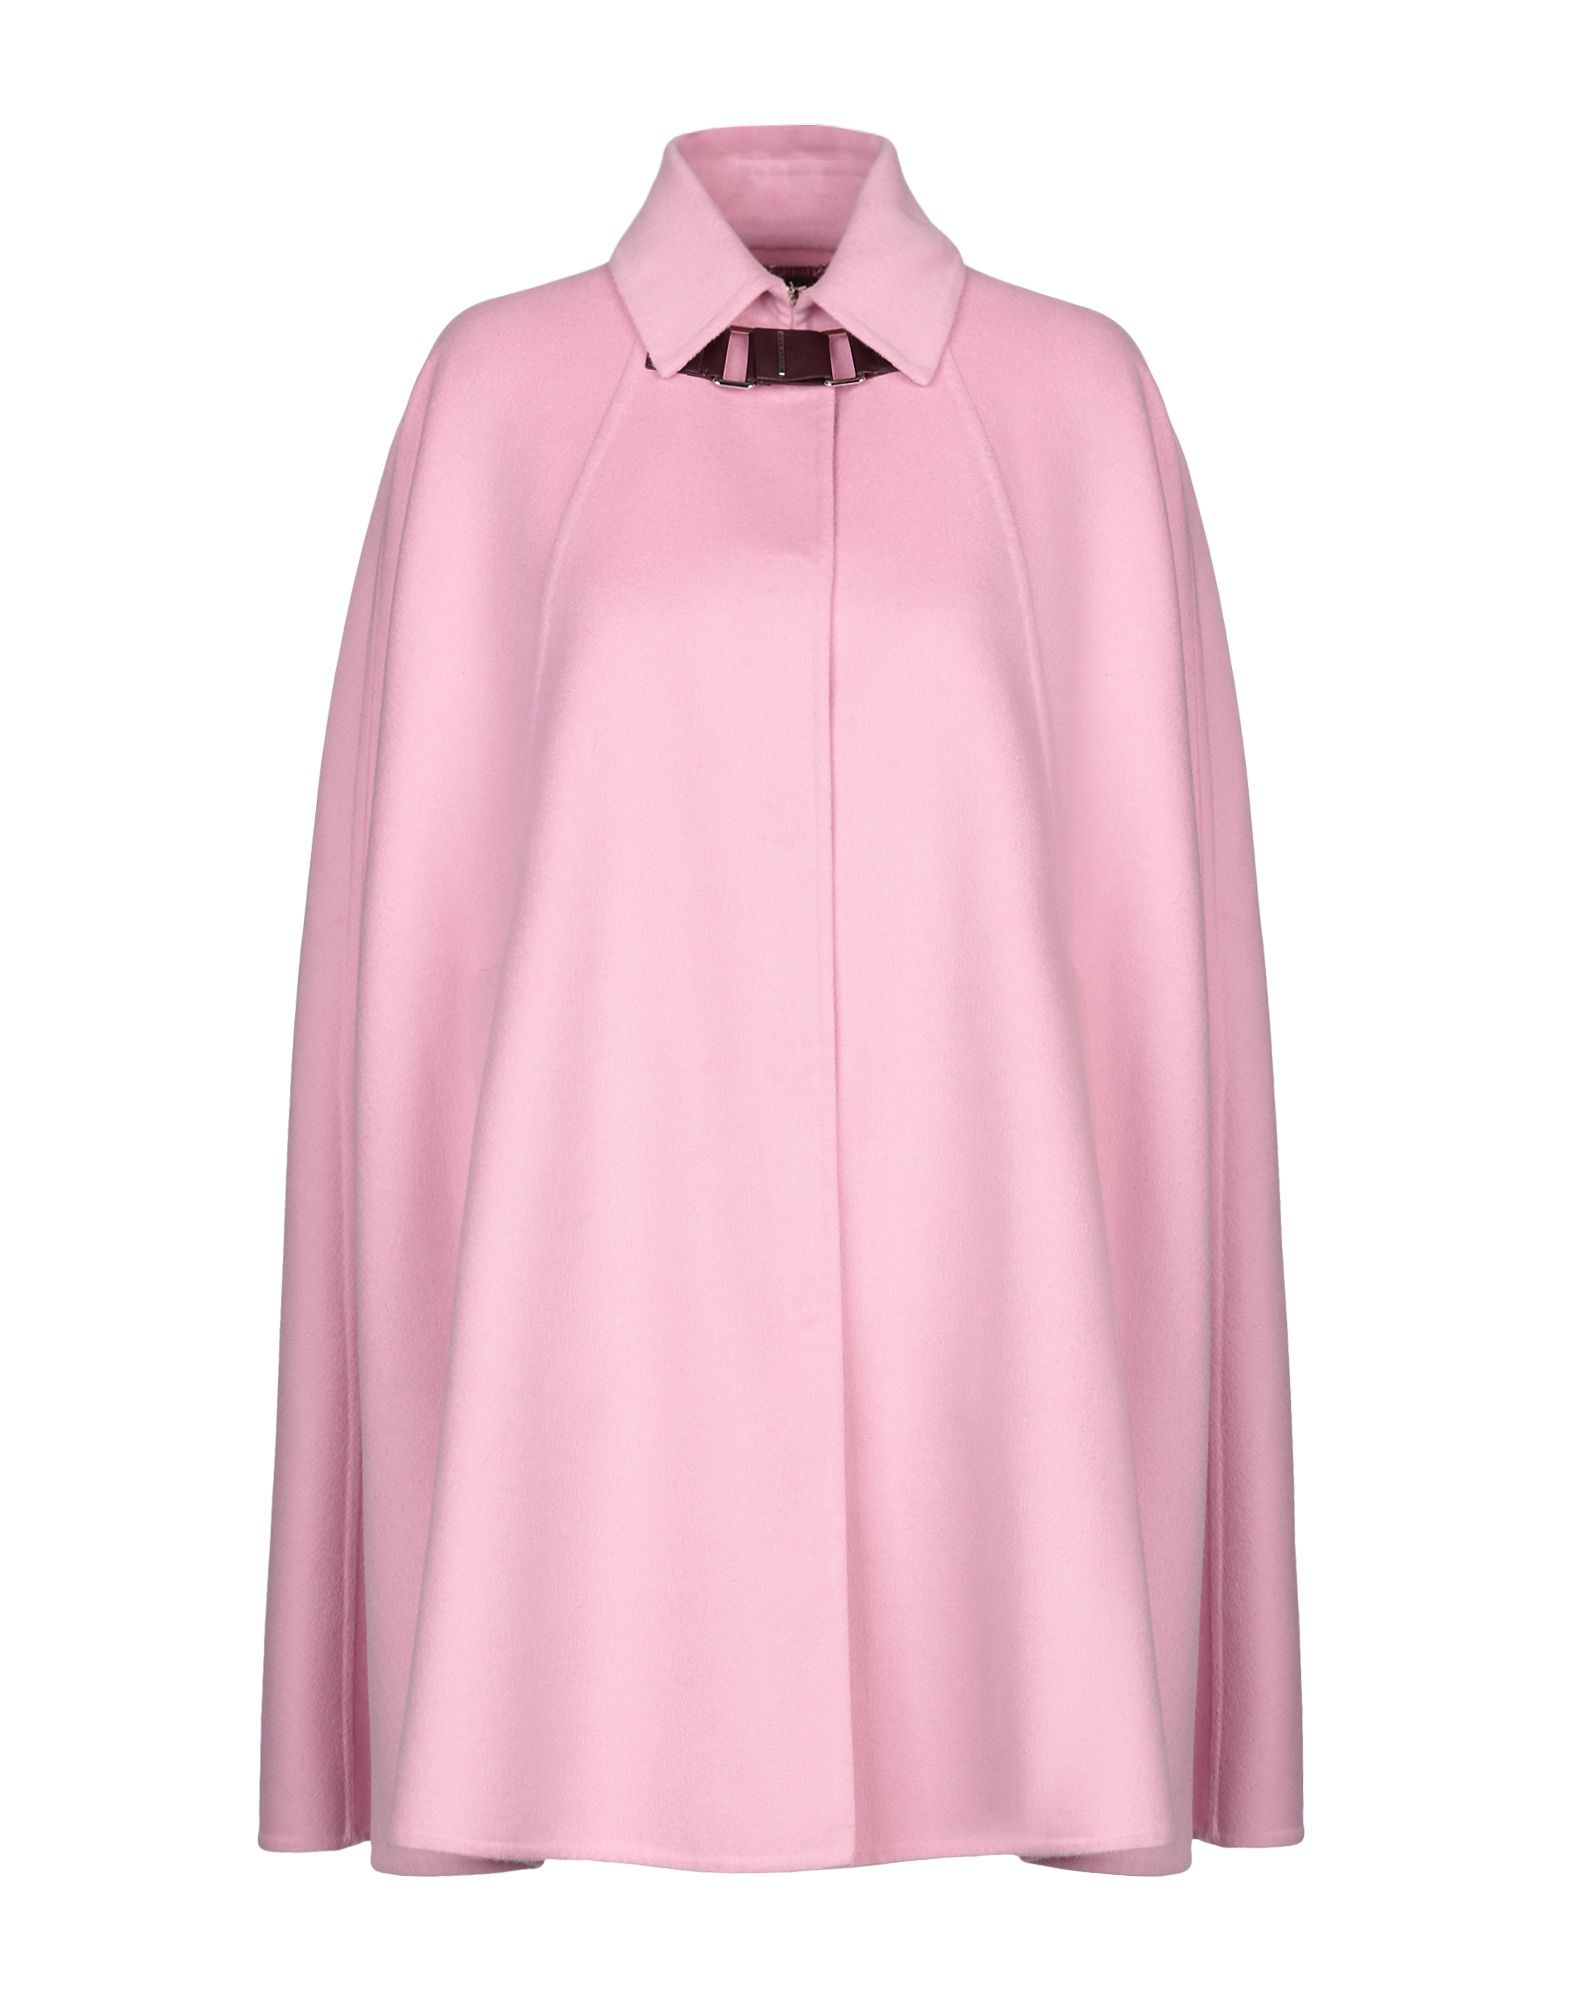 Versace Pink Wool Cape